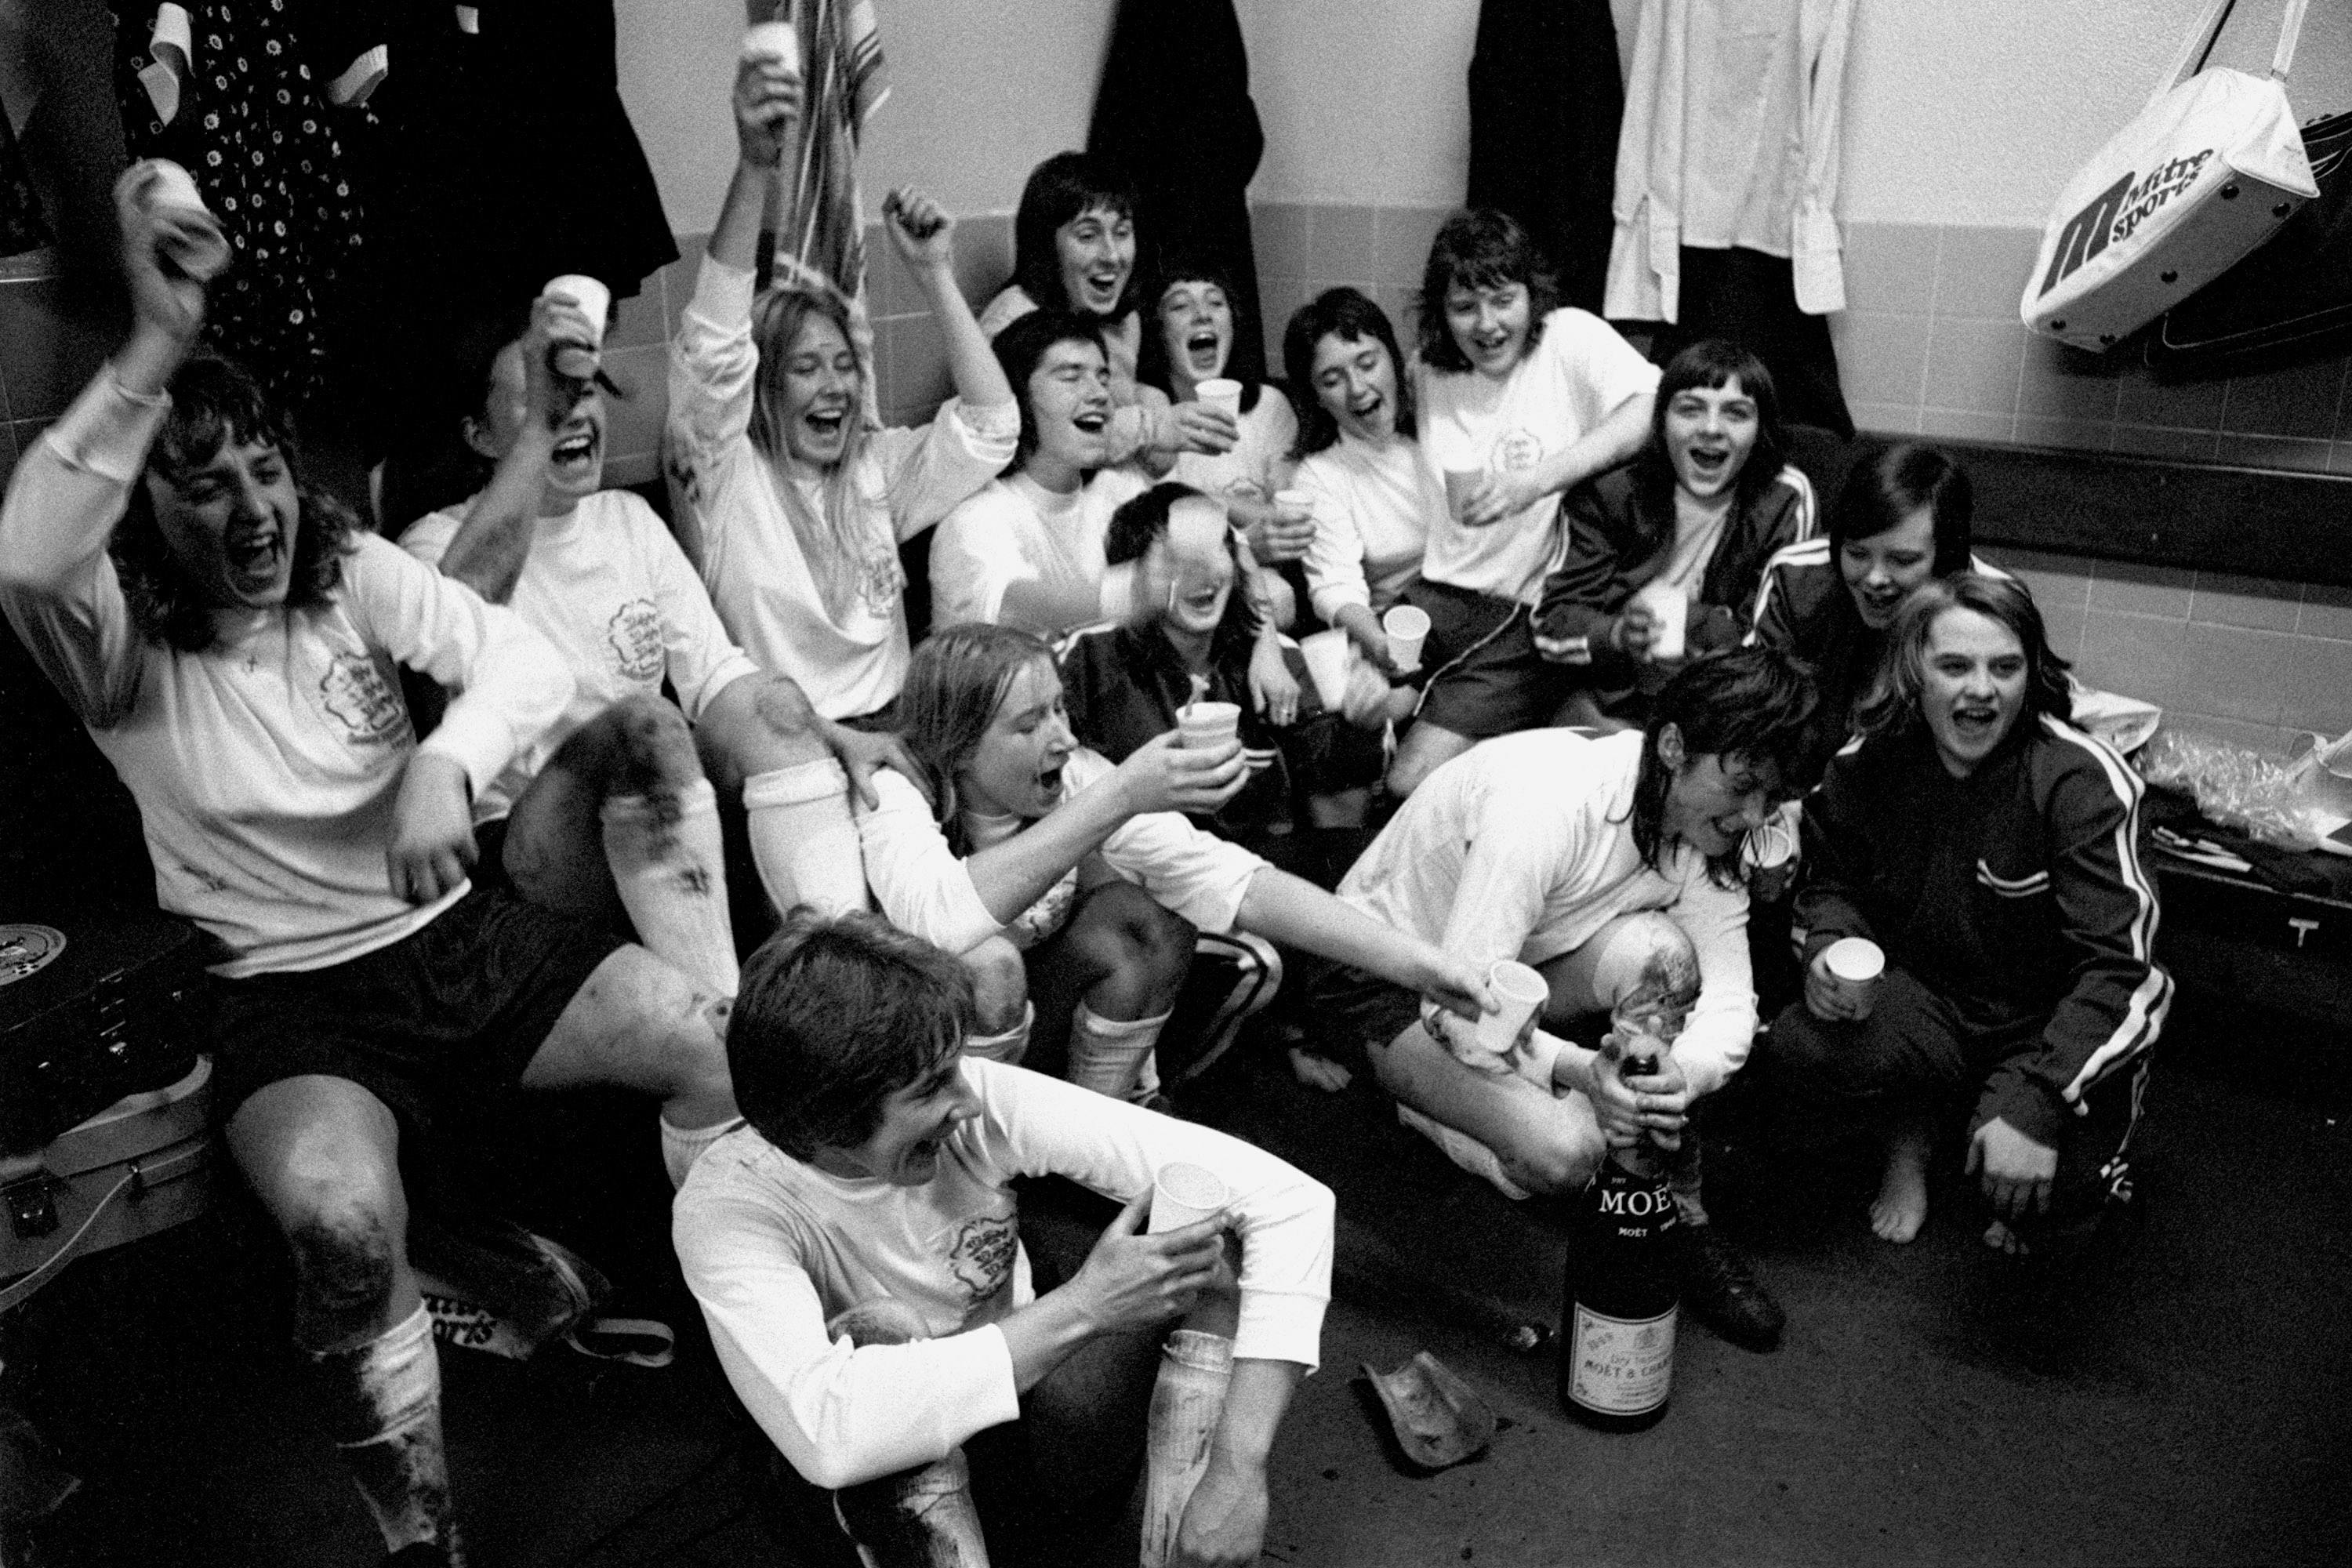 Inside Soccer Changing Rooms Of The 1970s: Bathtime With The Winners ...